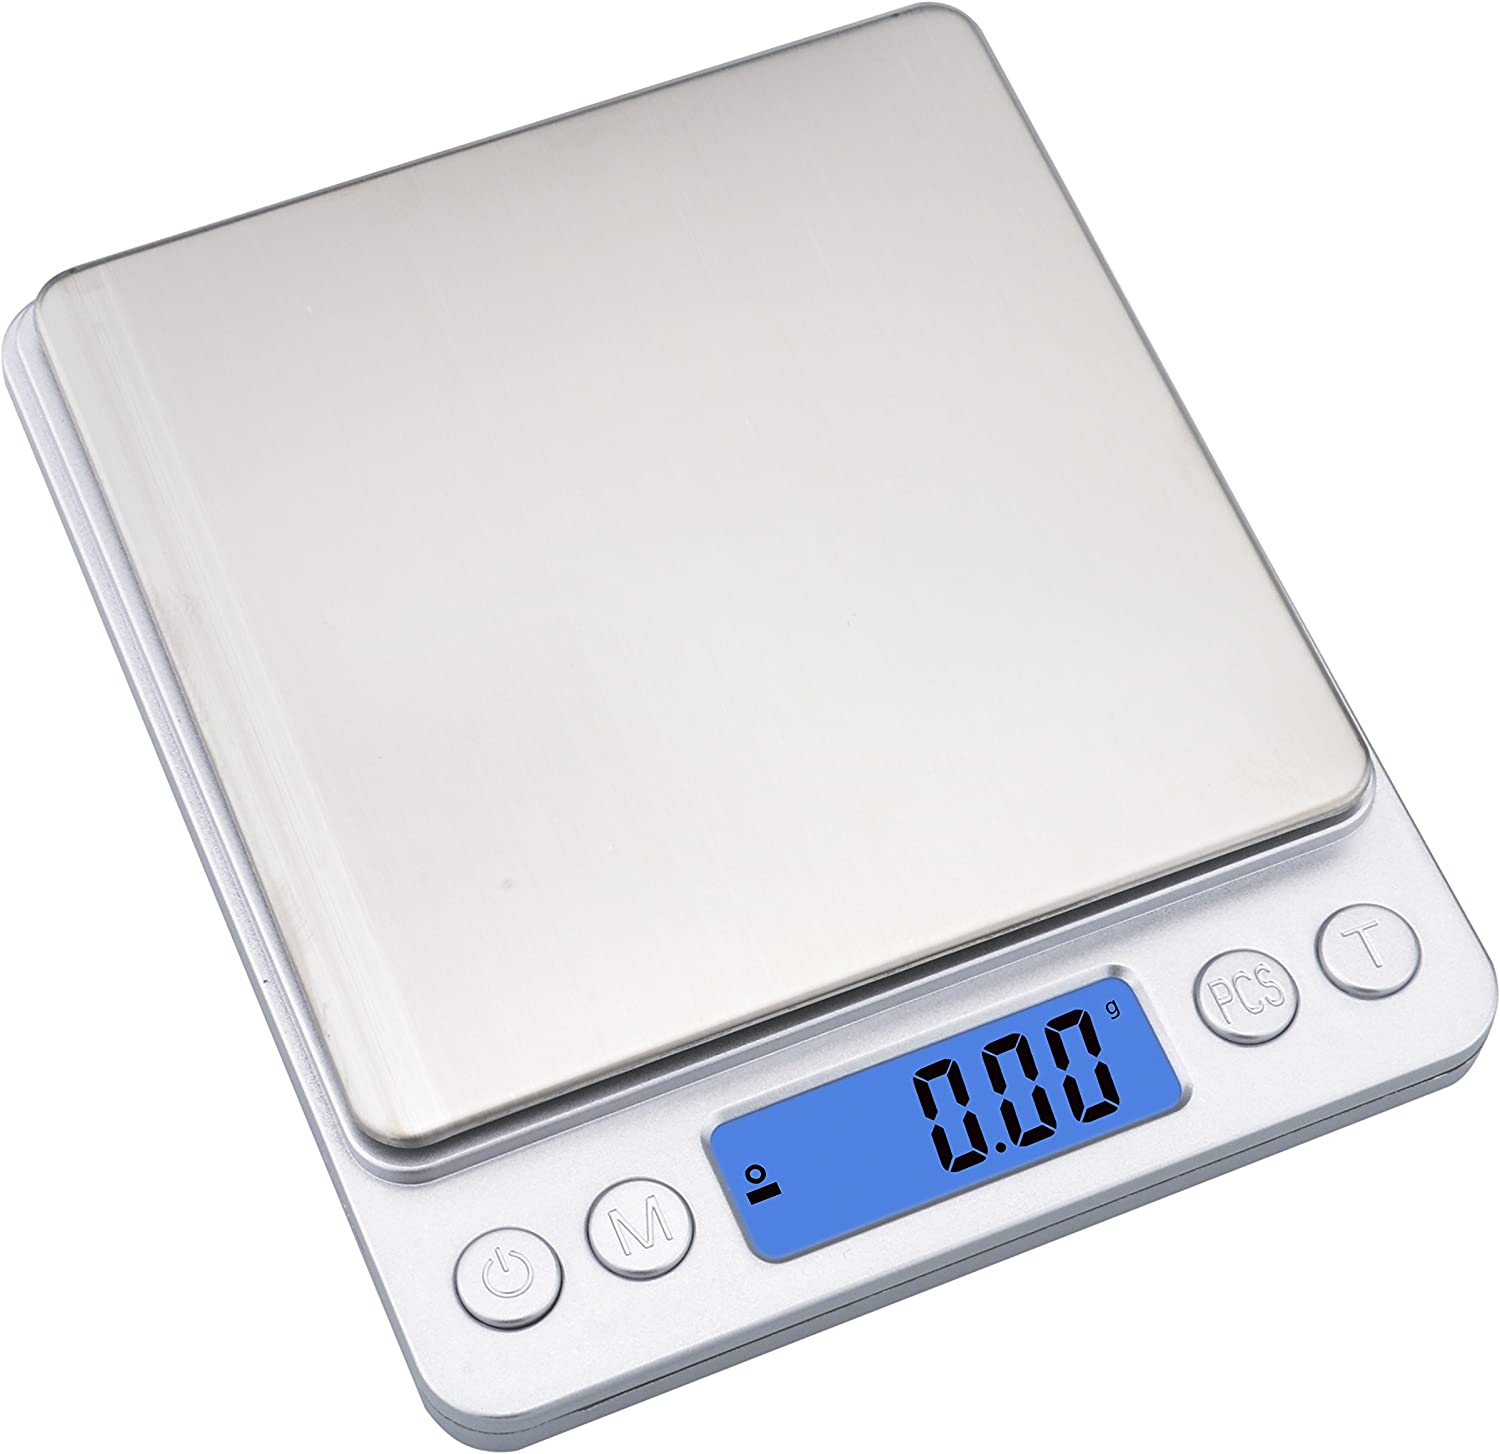 Ewolee Digital Kitchen Food Scale,500g/0.01g Multifunction Electric Jewelry Scales,Digital Pro Pocket Scales with Stainless Platform,Silver(2 Batteries& 2 trays Included)